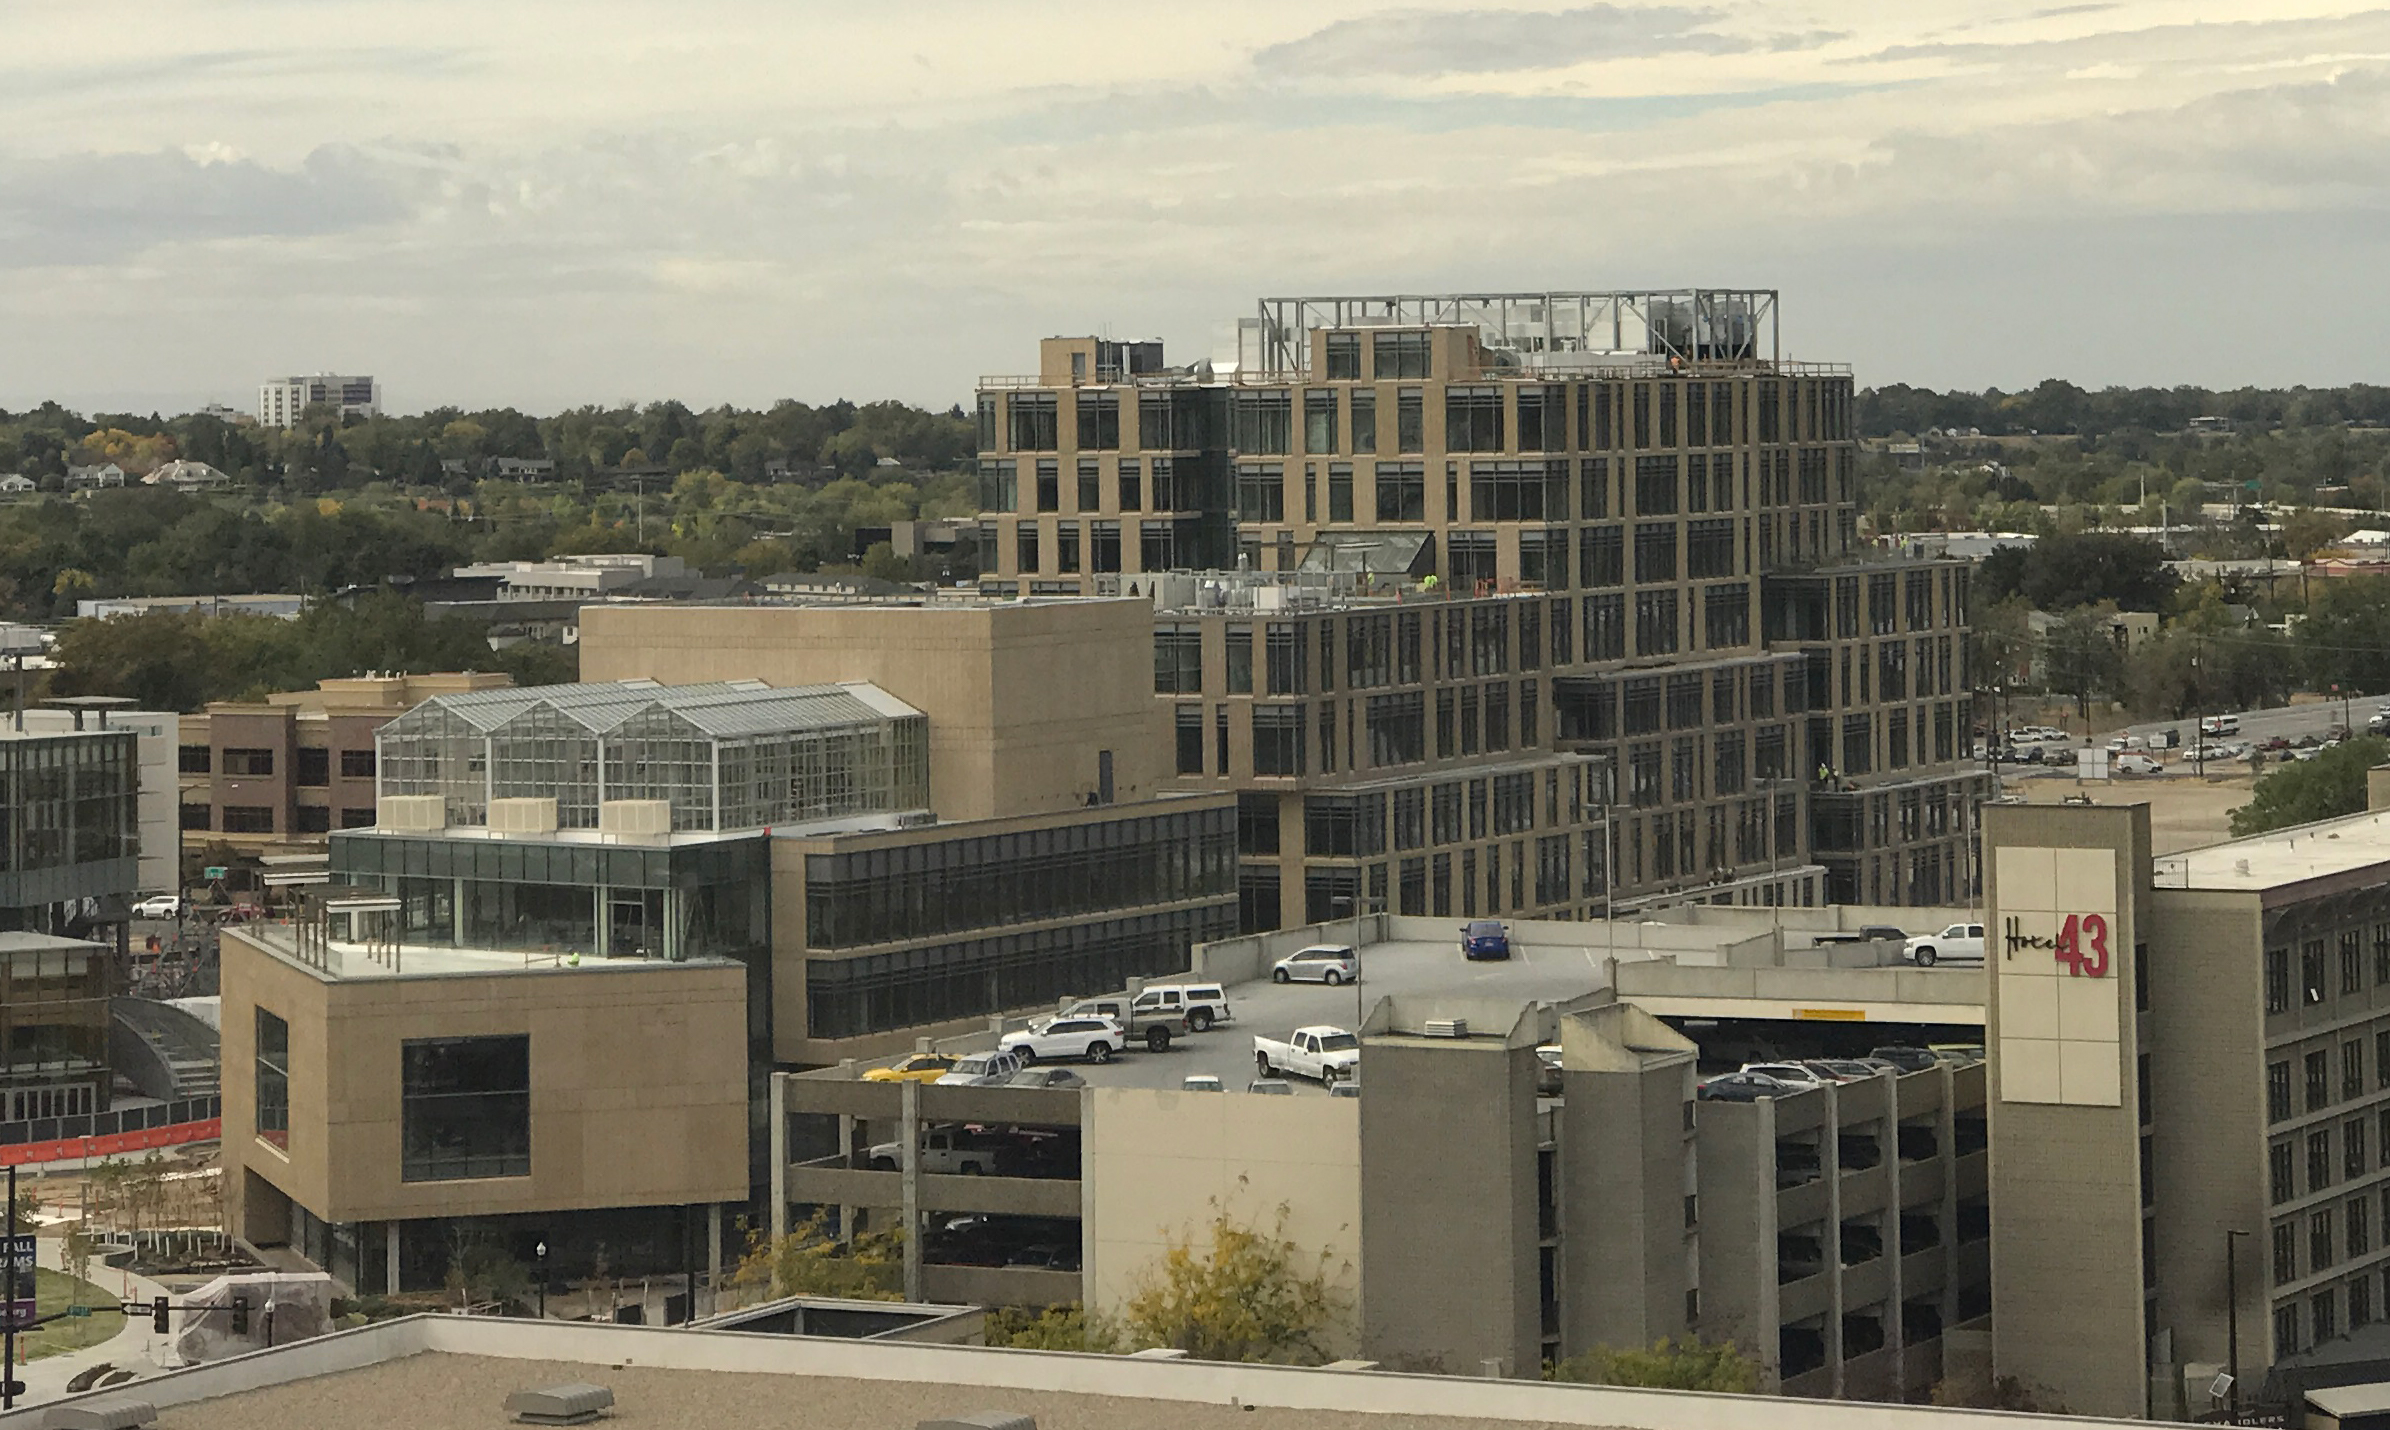 The new Simplot Building as seen from a distance - the US Bank Building several blocks away.